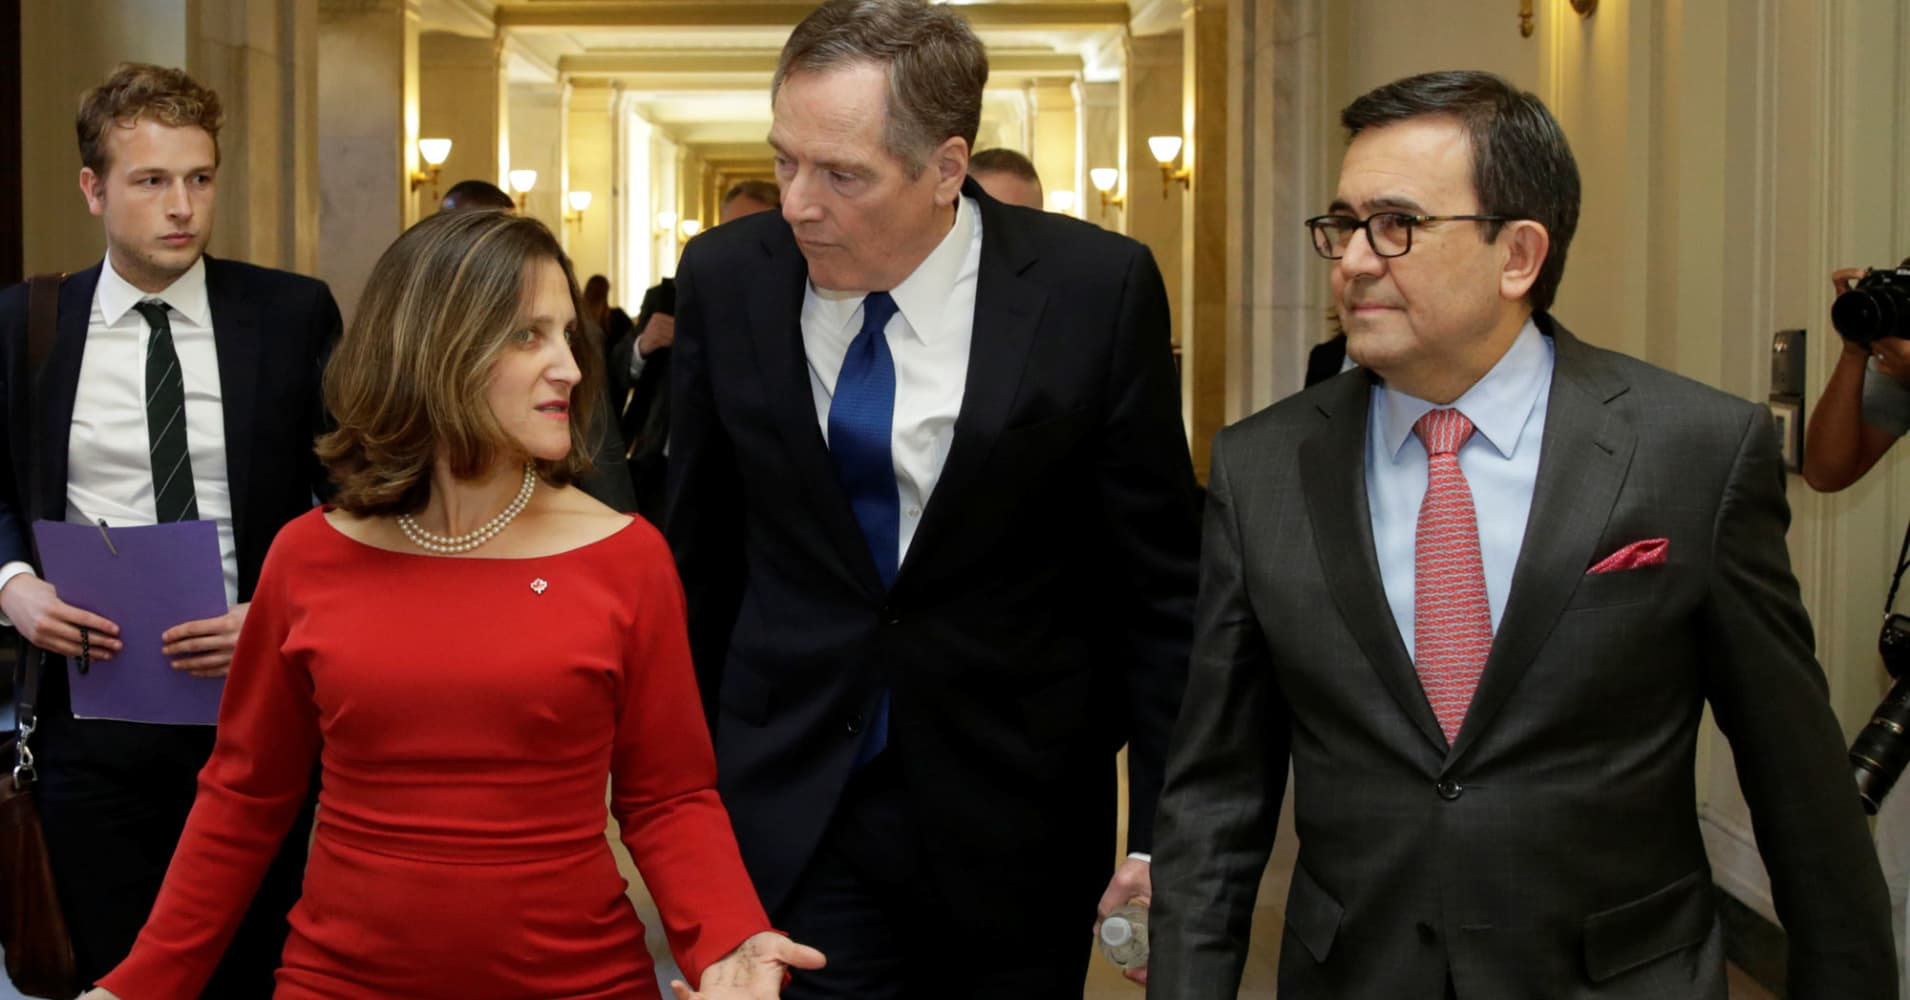 Talks to revise NAFTA will go into next year amid disagreements over how best to change the deal, top officials said.